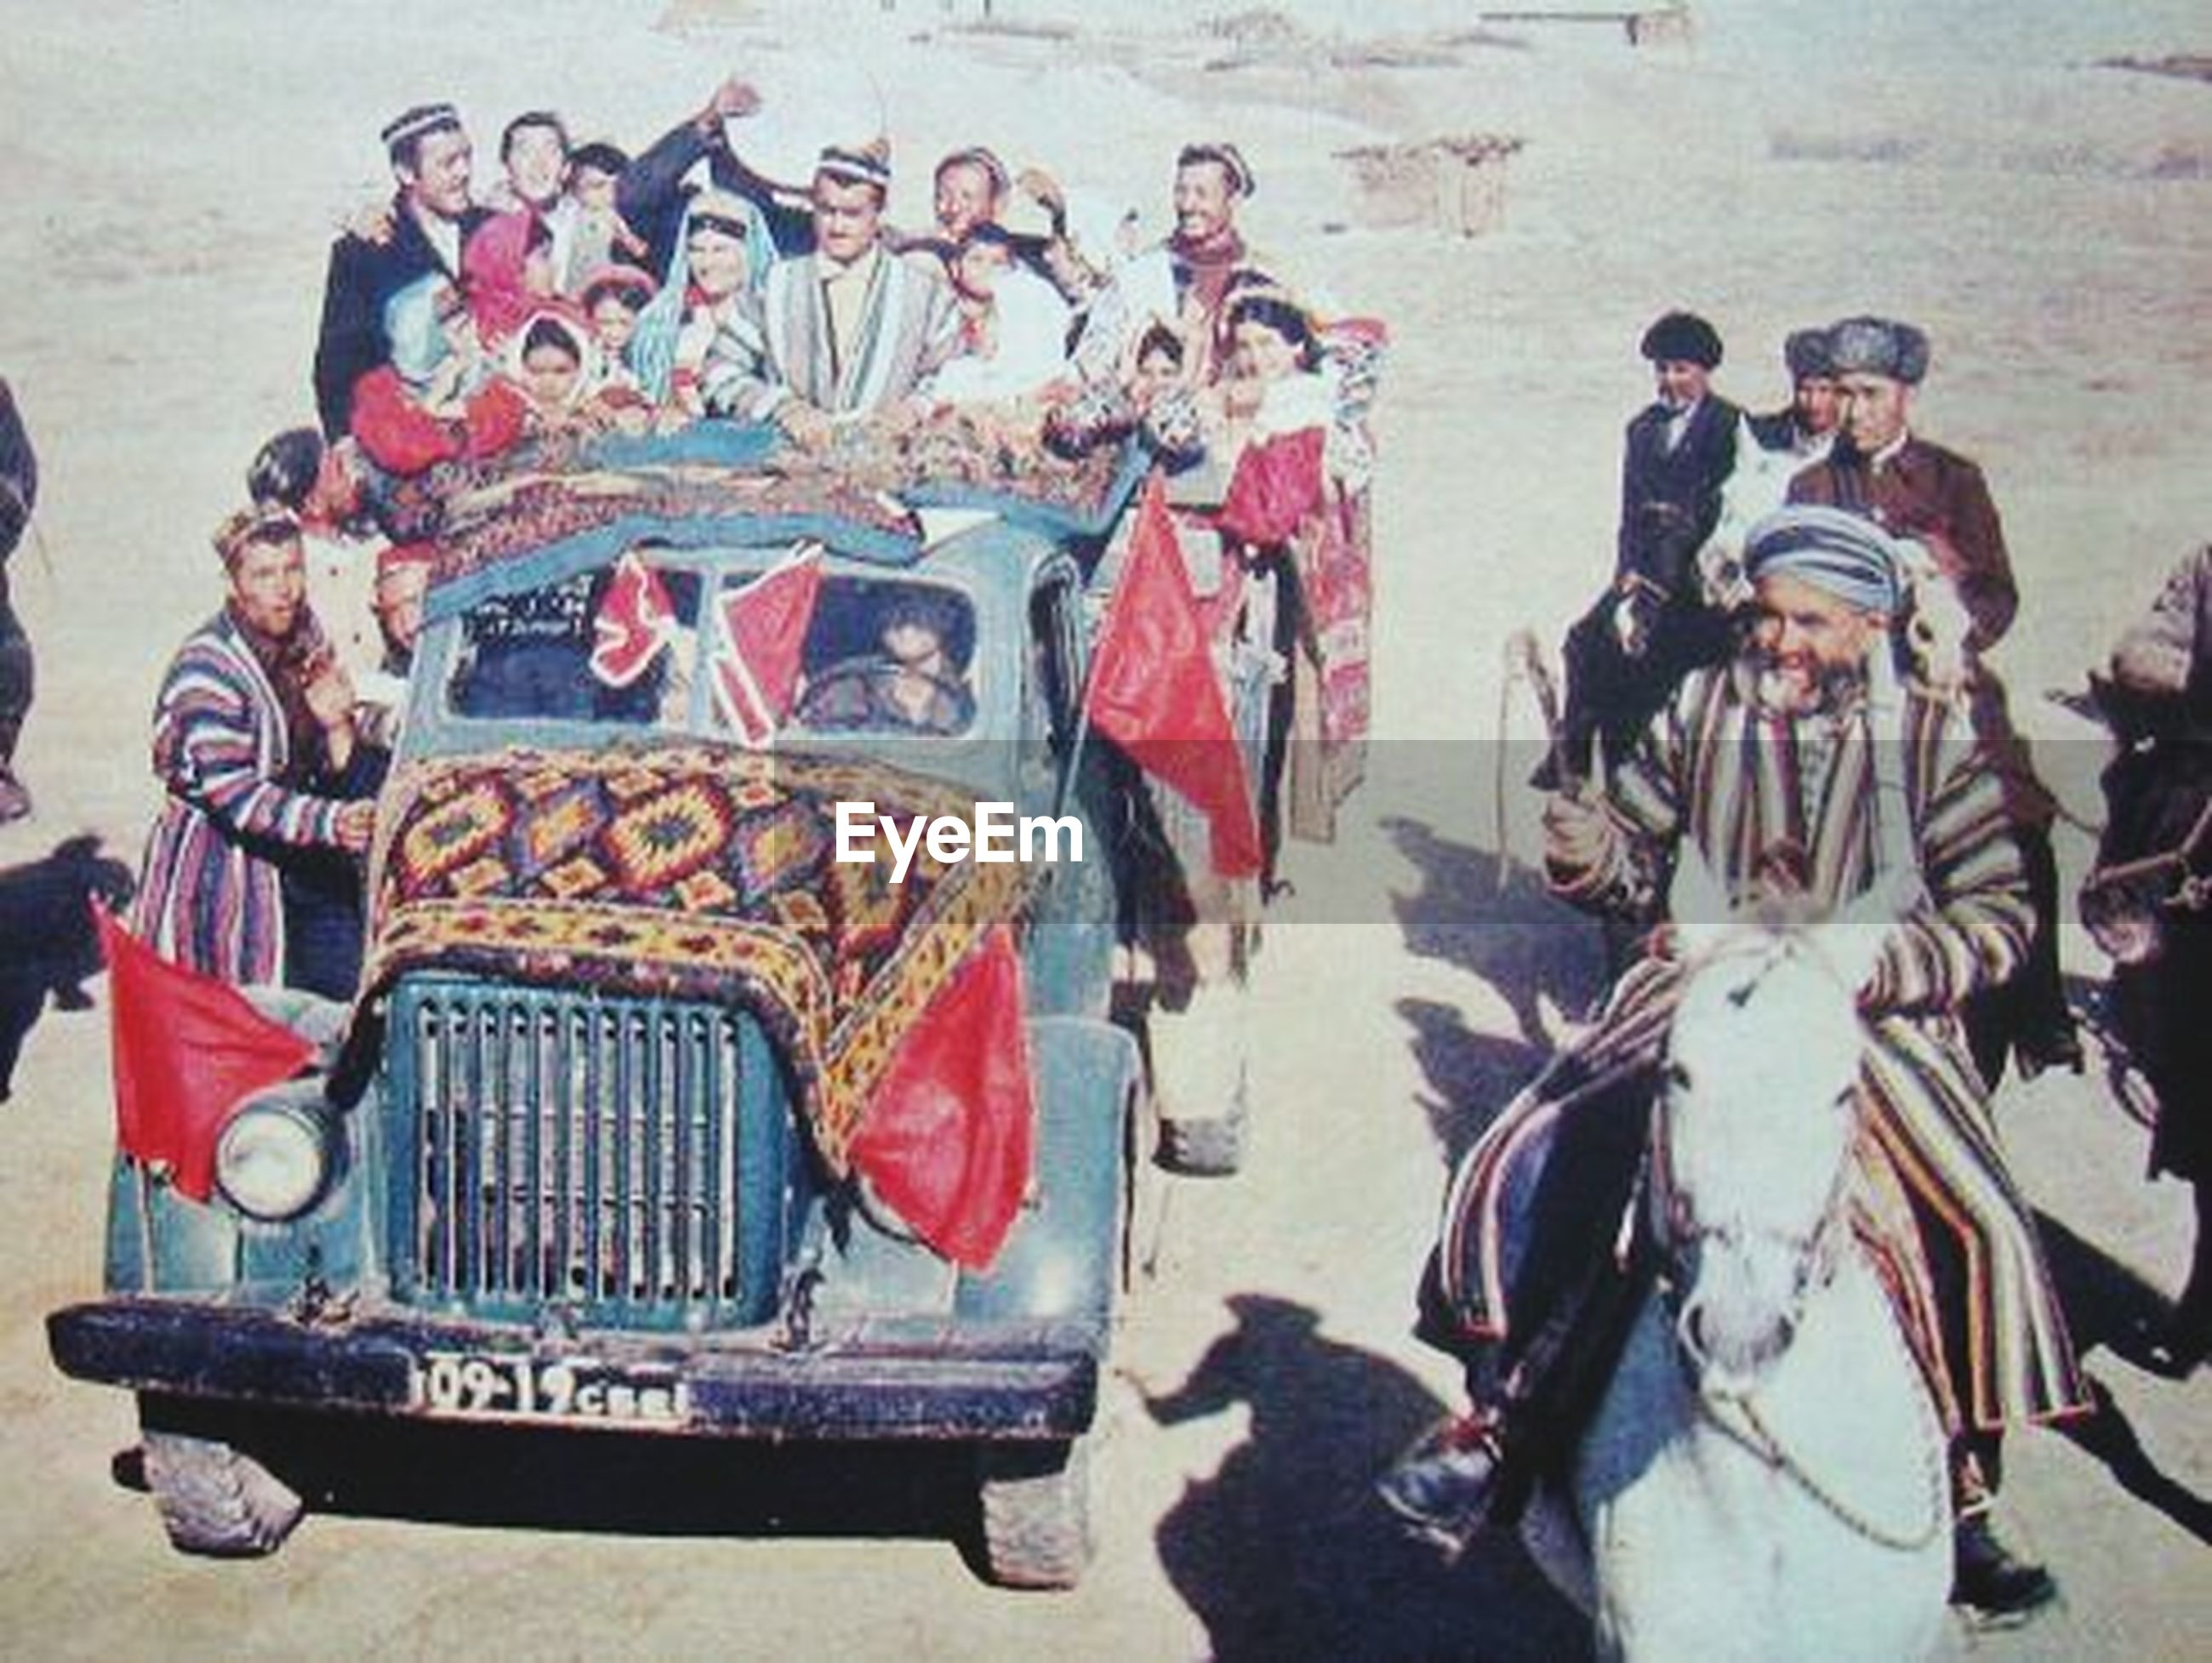 men, lifestyles, leisure activity, person, arts culture and entertainment, land vehicle, large group of people, transportation, high angle view, travel, art and craft, day, street, mode of transport, outdoors, sitting, casual clothing, art, medium group of people